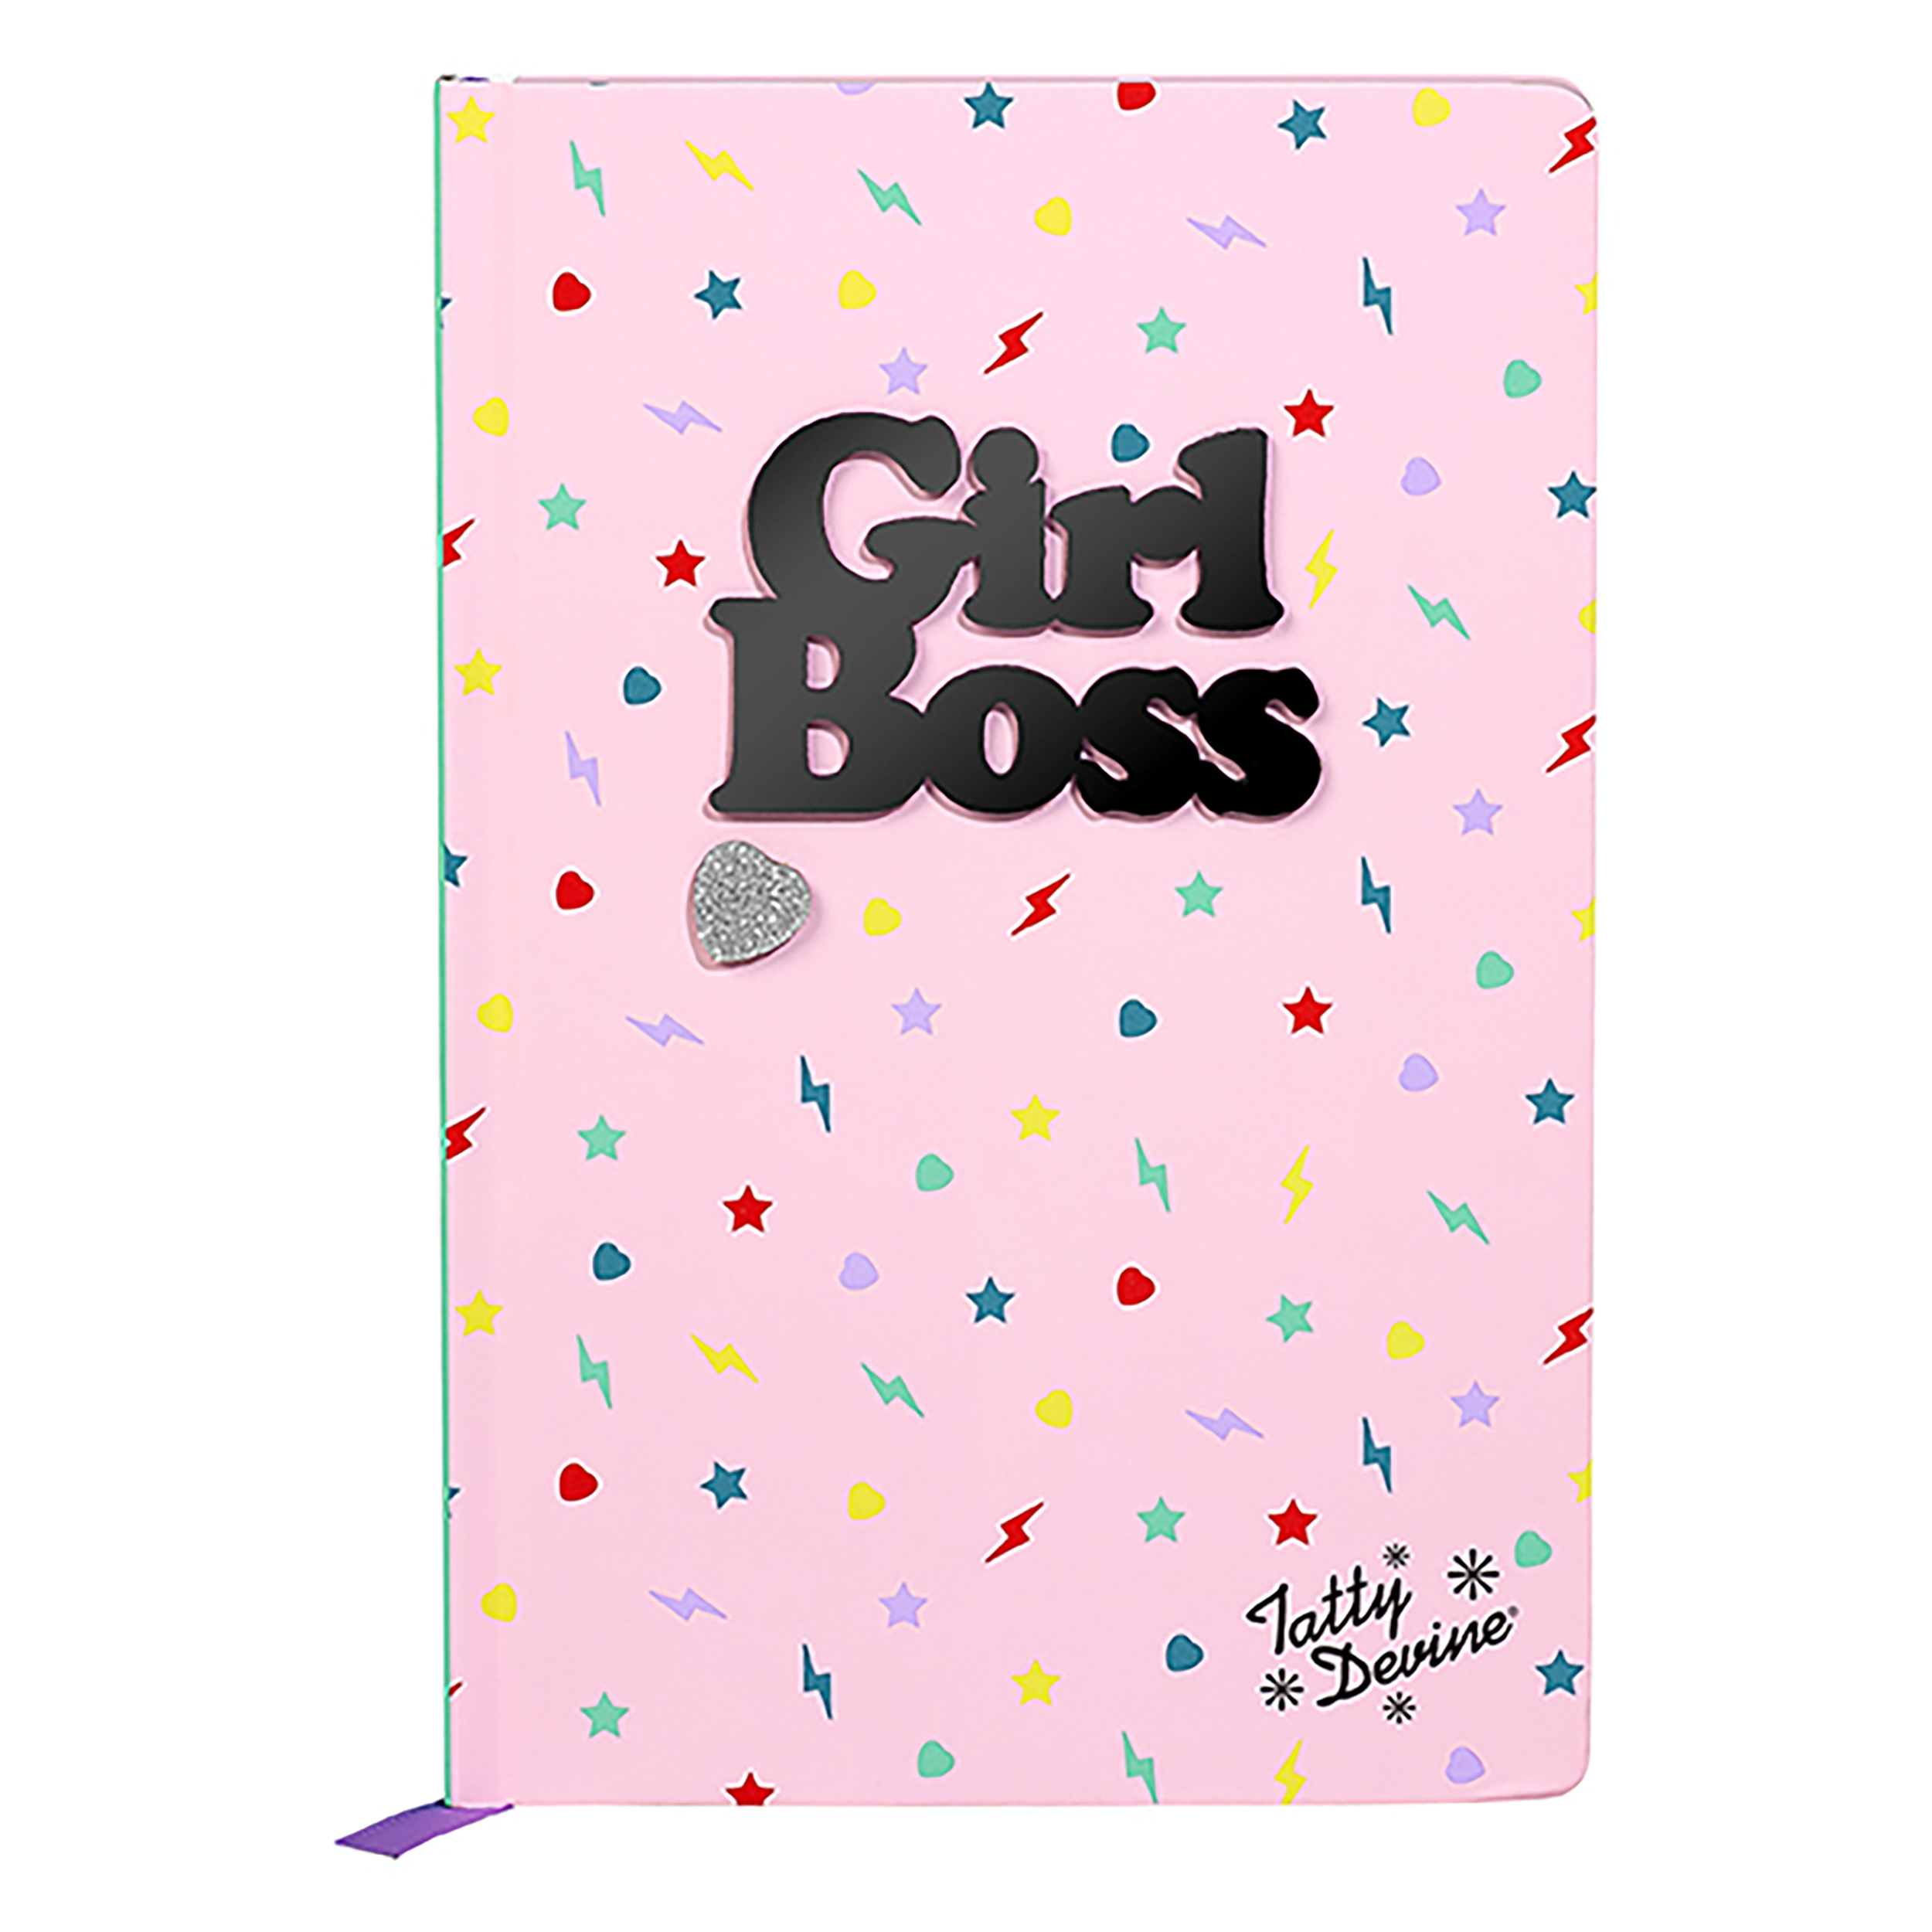 A5 Notebook, Girl Boss